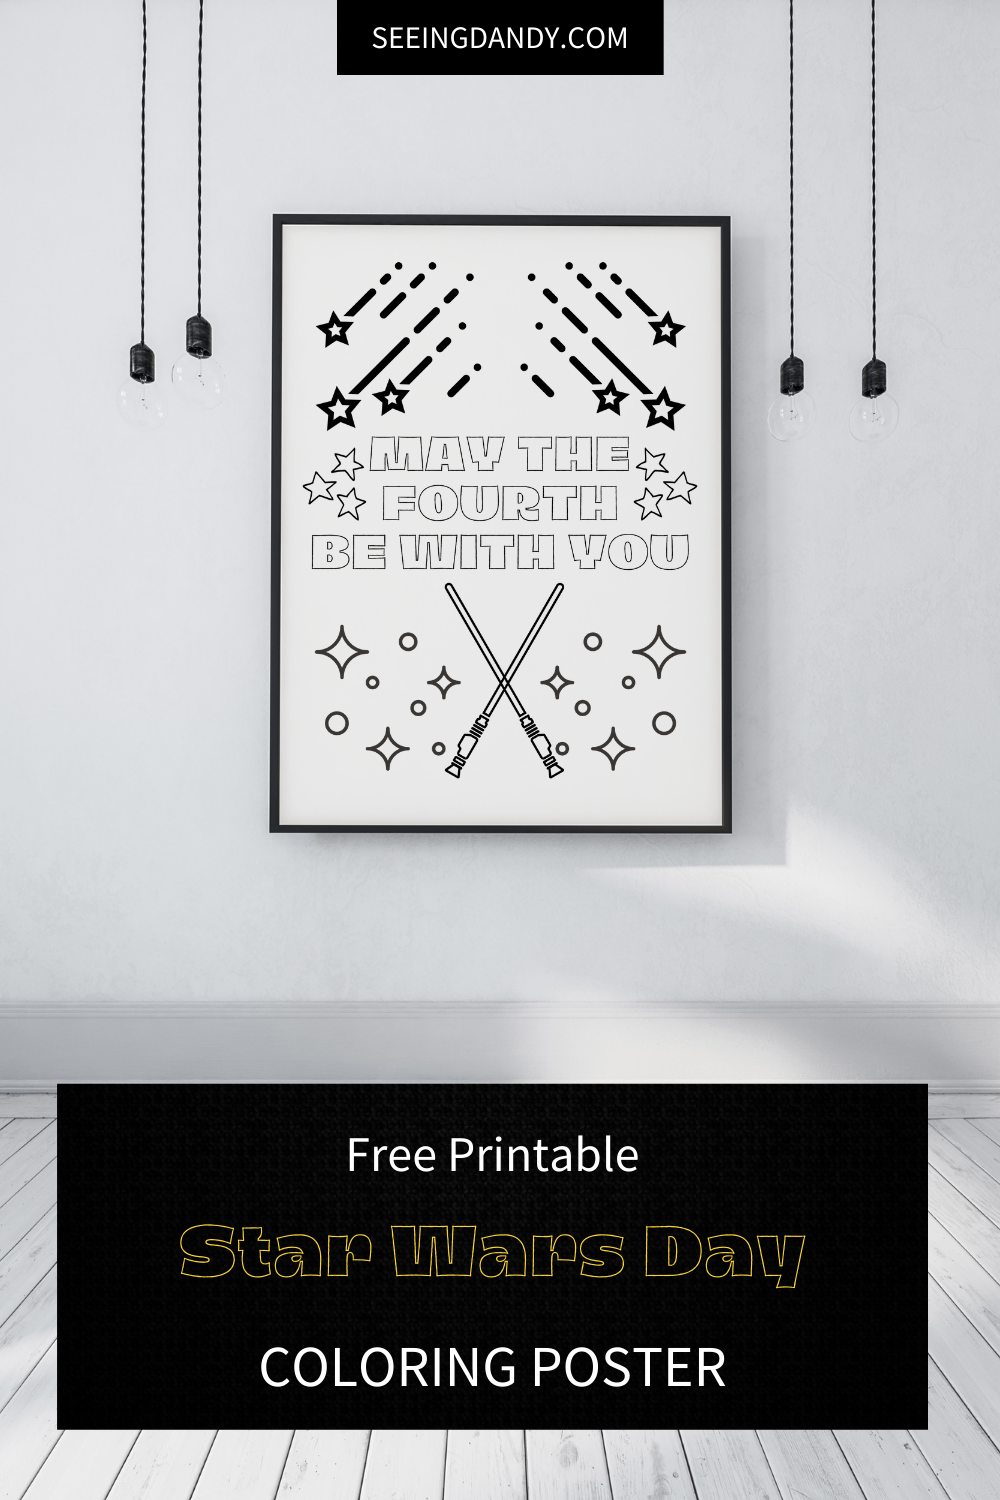 may the fourth be with you, star wars day coloring poster, star wars poster, free printables, coloring sheet, coloring page, star wars room decor